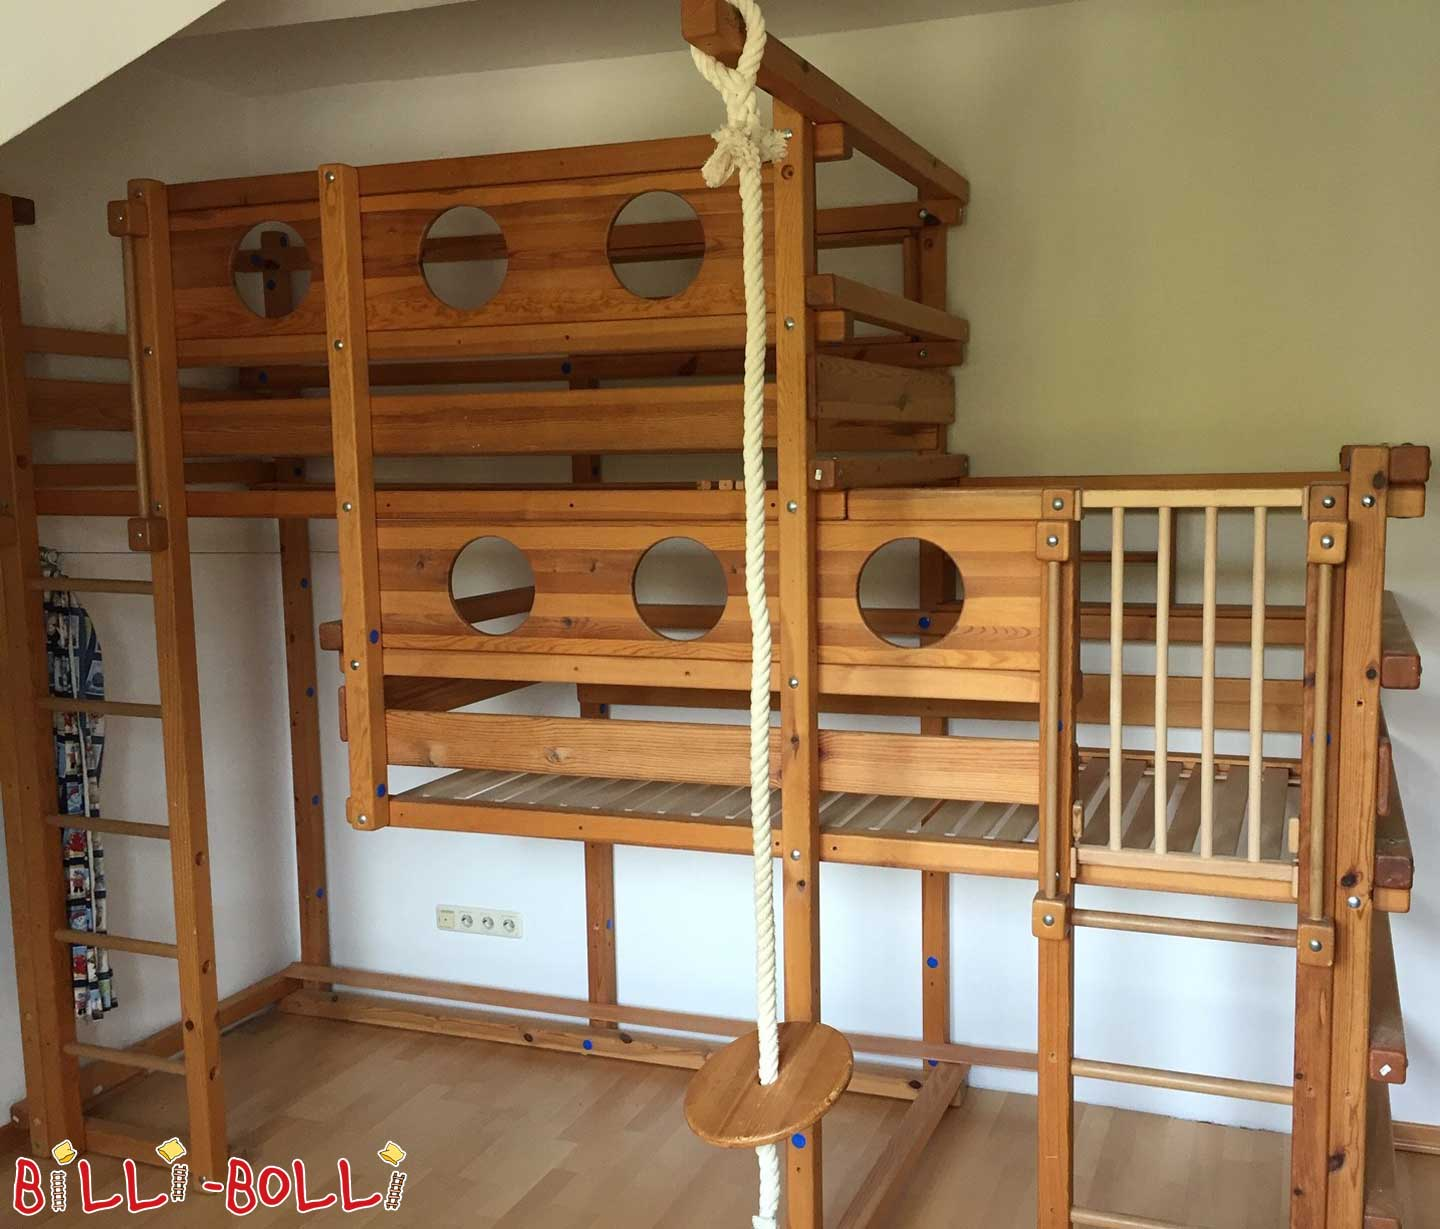 Both up bed type 2b (second hand kids' furniture)